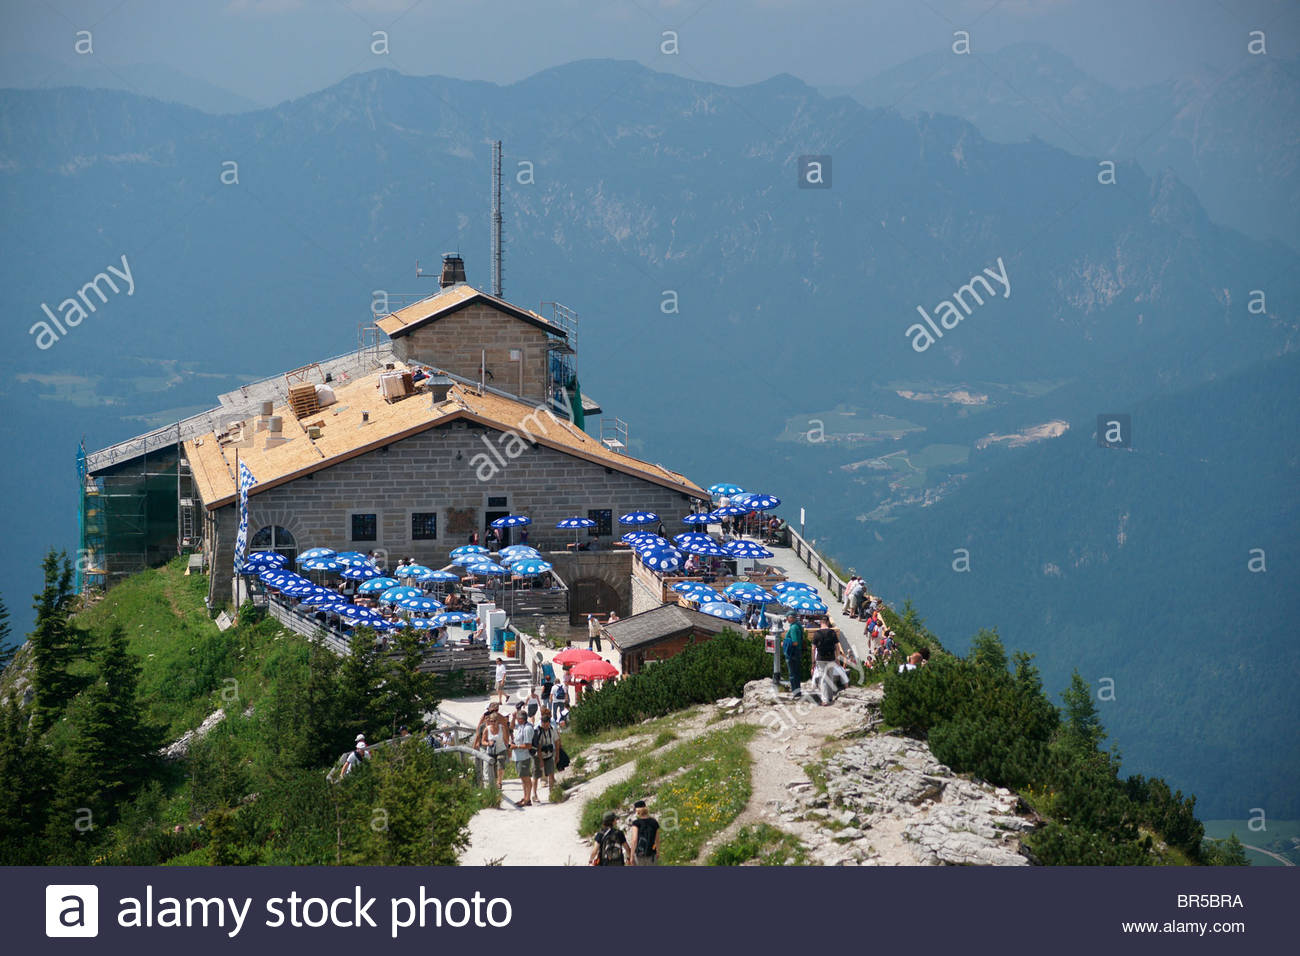 views from adolf hilter mountain top home in the bavarian alps stock photo 31466494 alamy. Black Bedroom Furniture Sets. Home Design Ideas